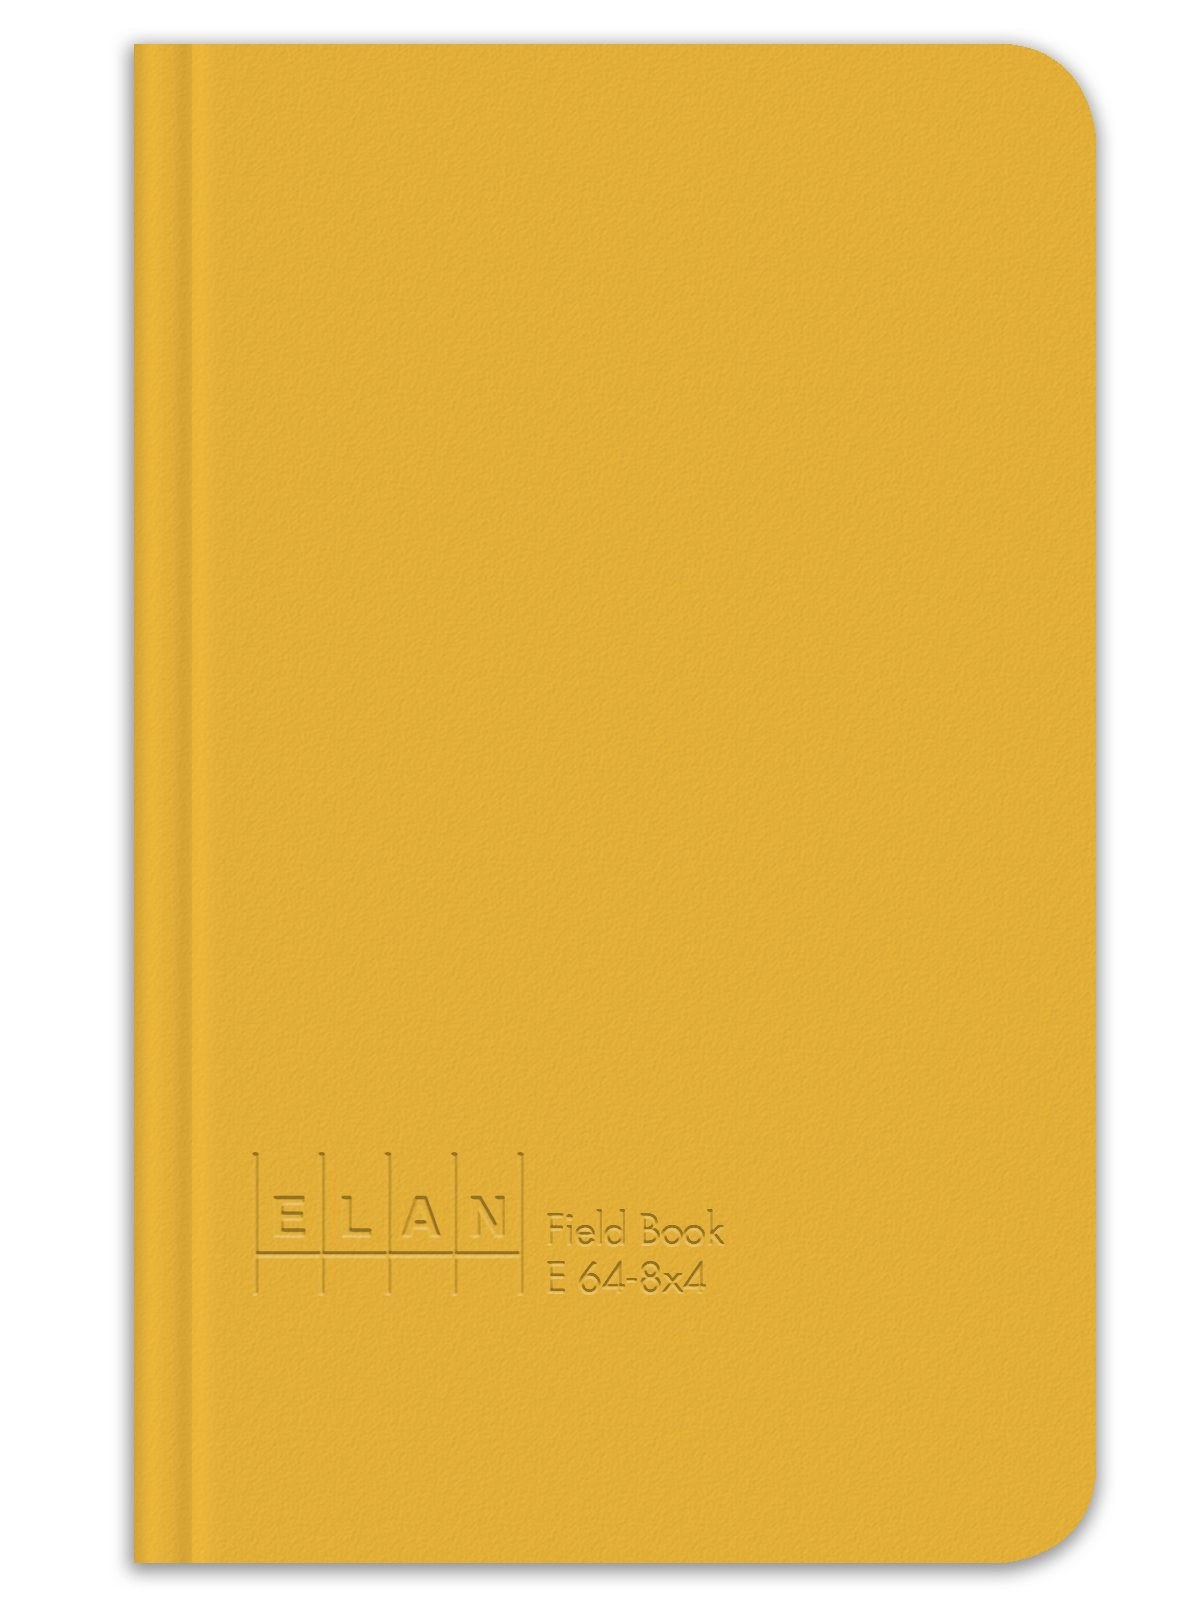 Elan Publishing Company E64-8x4 Field Surveying Book 4 ⅝ x 7 ¼, Yellow Cover (Pack of 24)